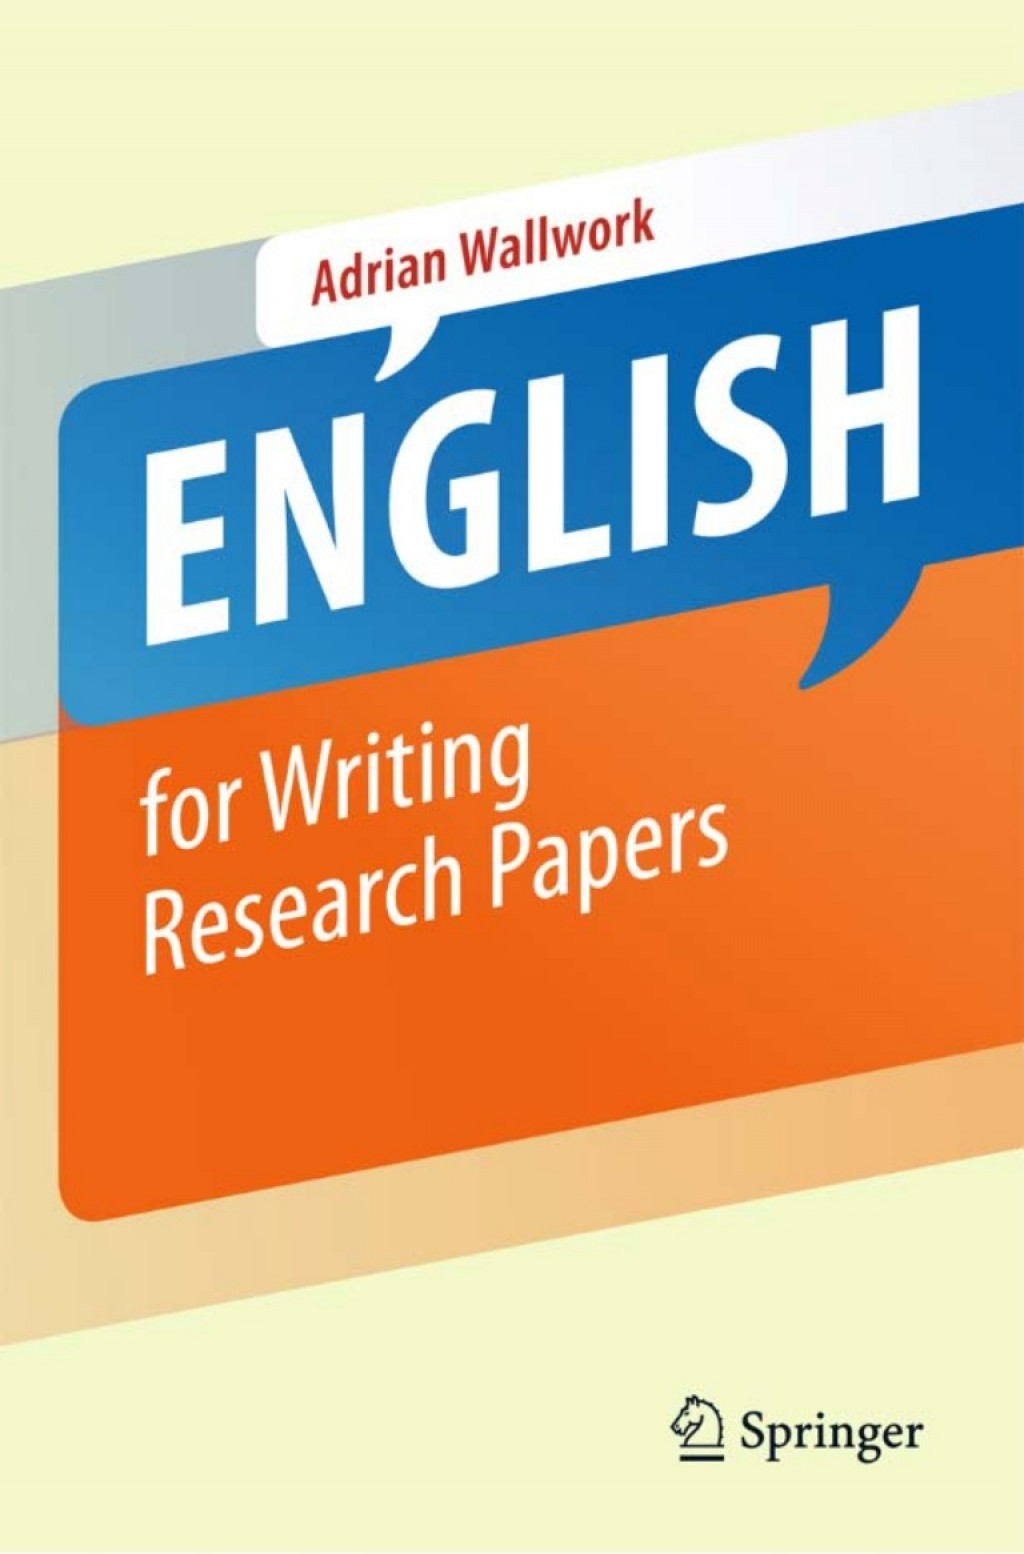 021 Englishforwritingresearchpapers Conversion Gate01 Thumbnail Help With Writing Researchs Fantastic Research Papers Assistance A Paper Large